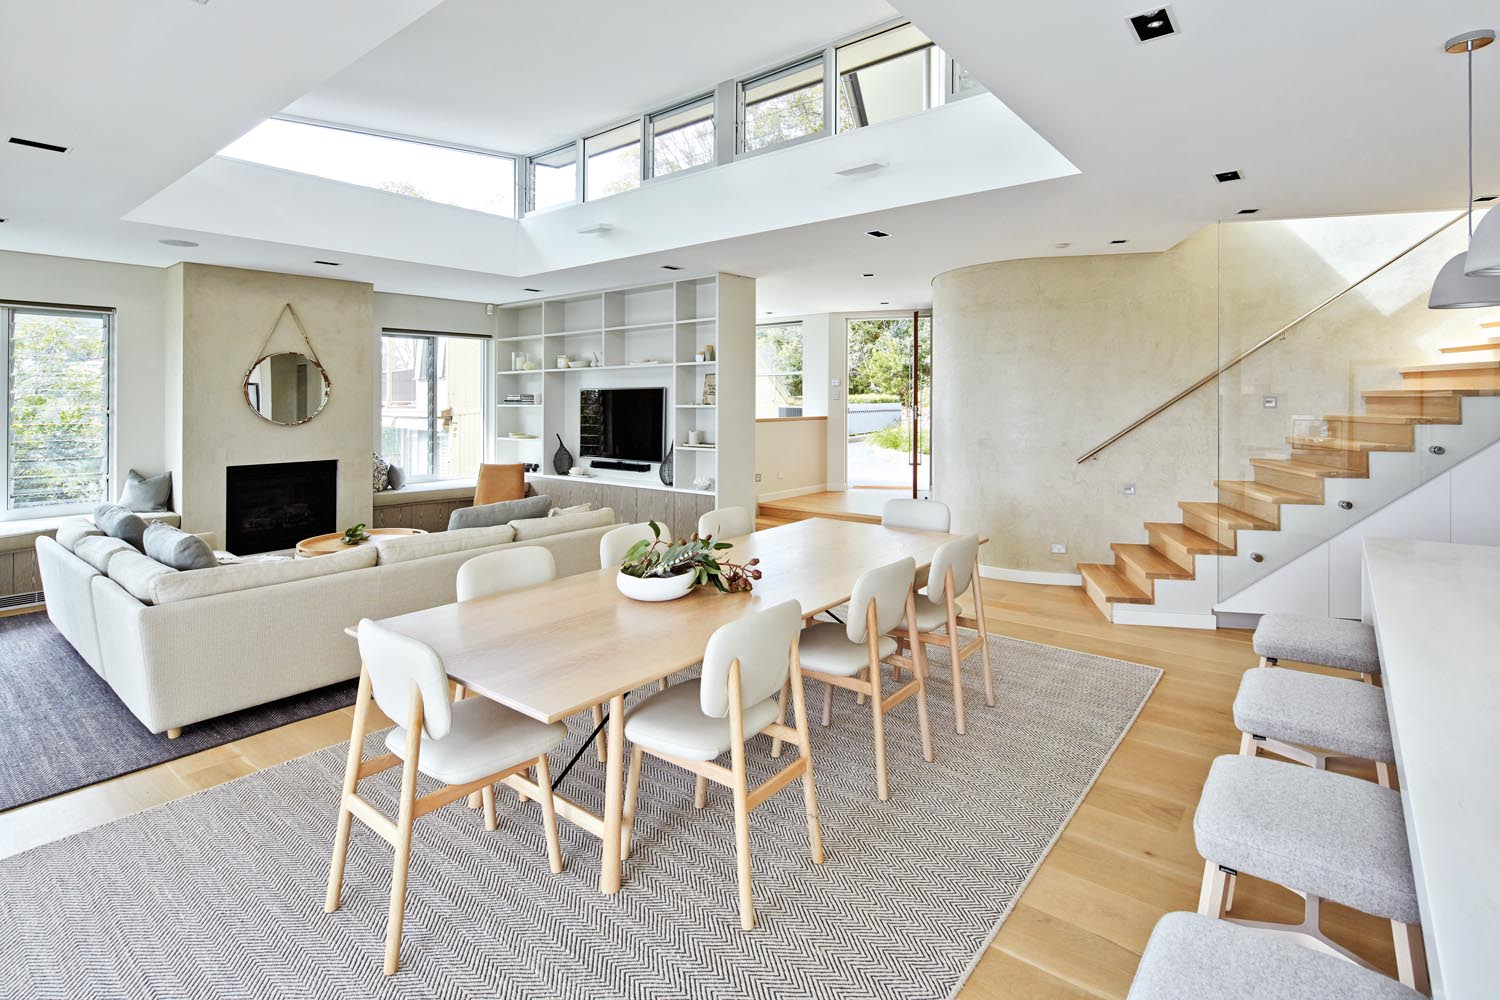 Interiors are kept clean and crisp with a neutral colour scheme